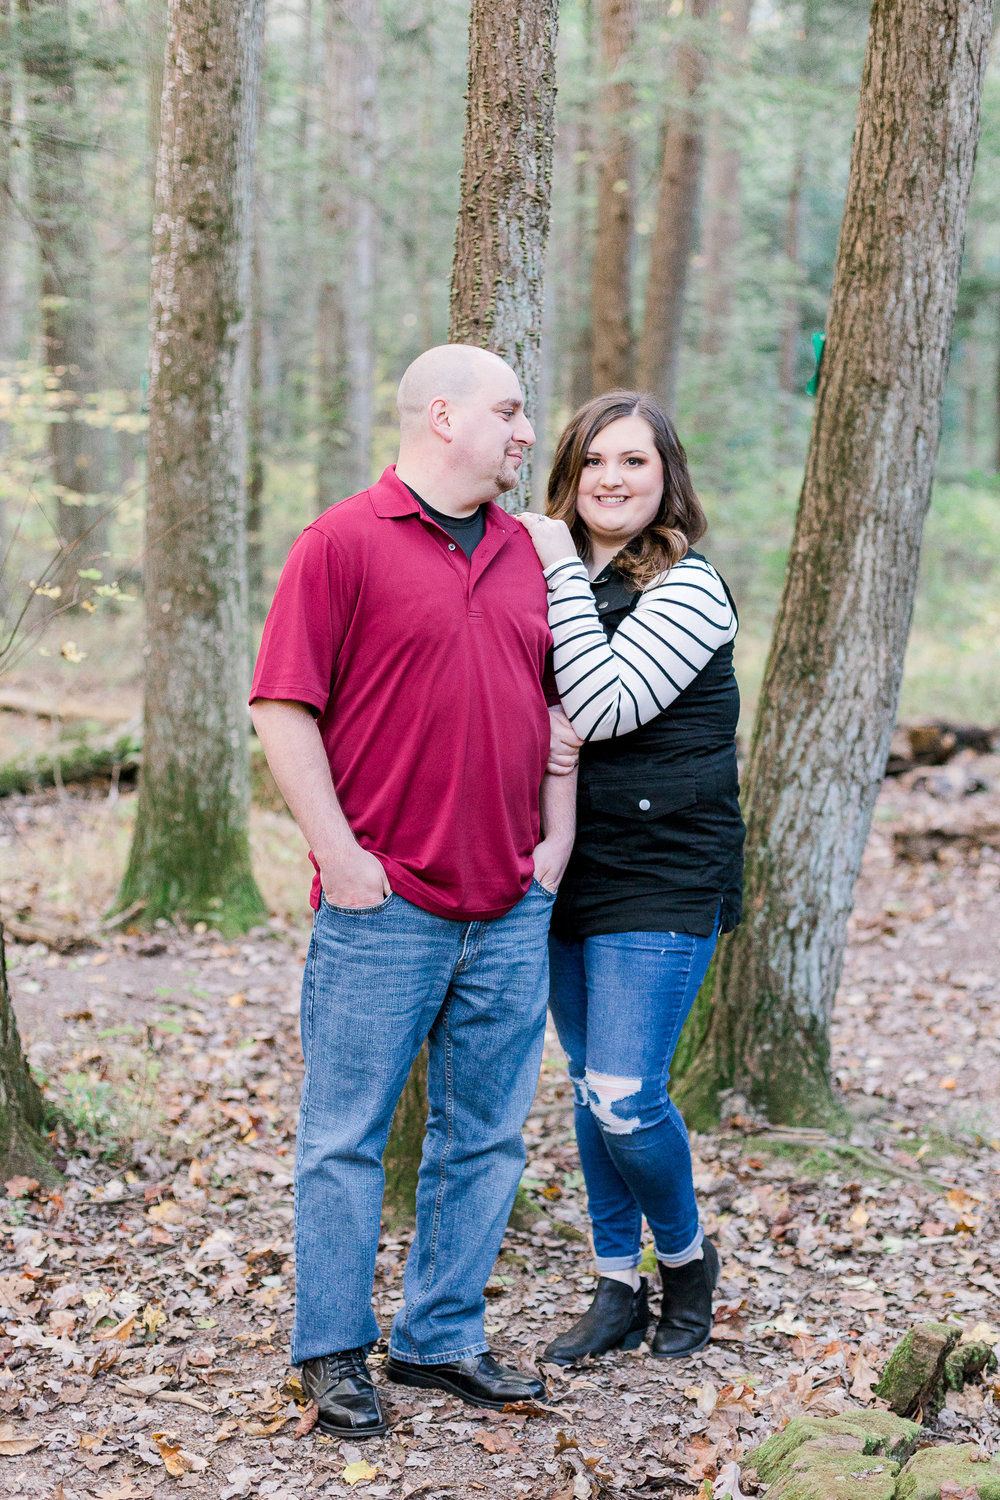 Jacobsburg State Park Nazareth Pennsylvania Woodsy Fall Engagement Session wedding and lifestyle photographer Lytle Photo Co (16 of 64).jpg